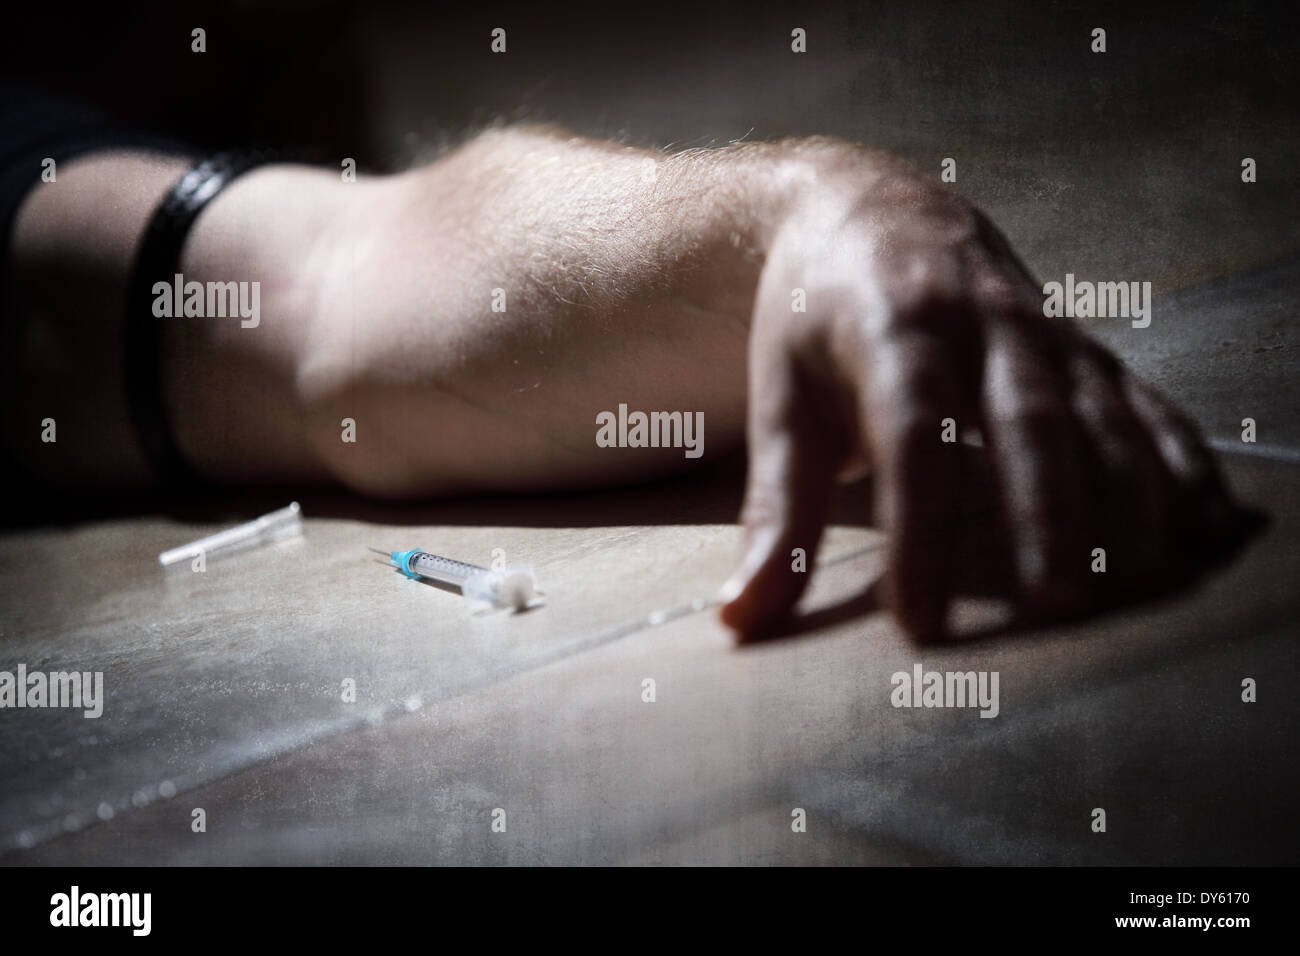 Drugs abuse - Stock Image